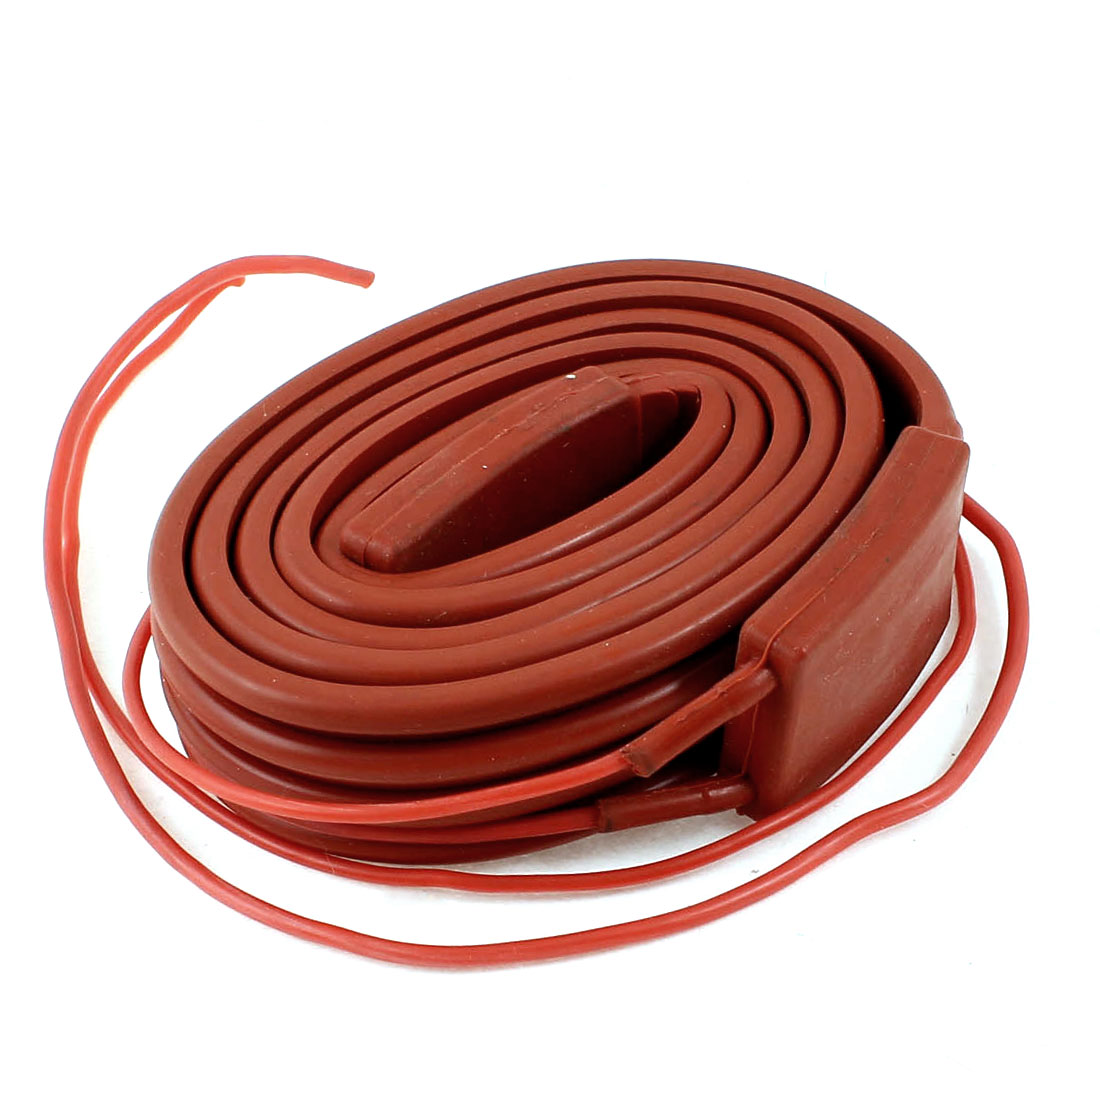 12V Freezing Protection Silicone Band Waterproof Heater Strip 1M x25mm